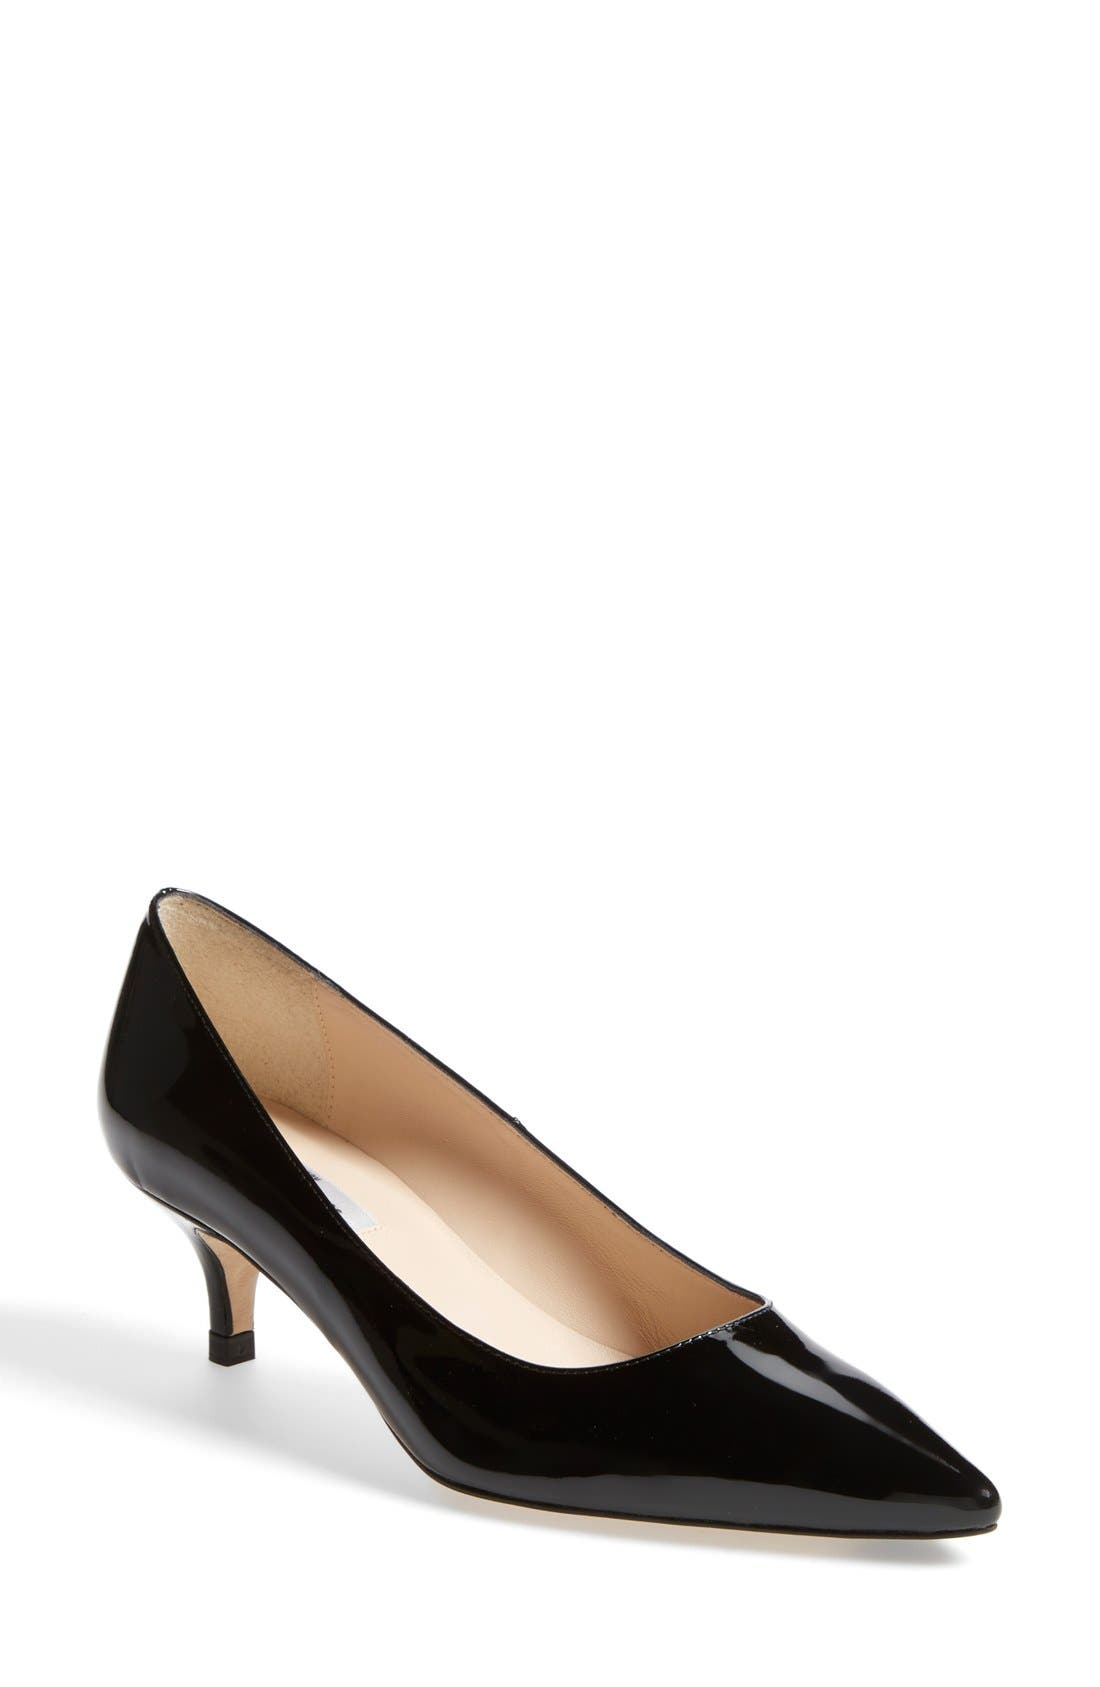 L.K. BENNETT 'Minu' Patent Leather Pointy Toe Pump